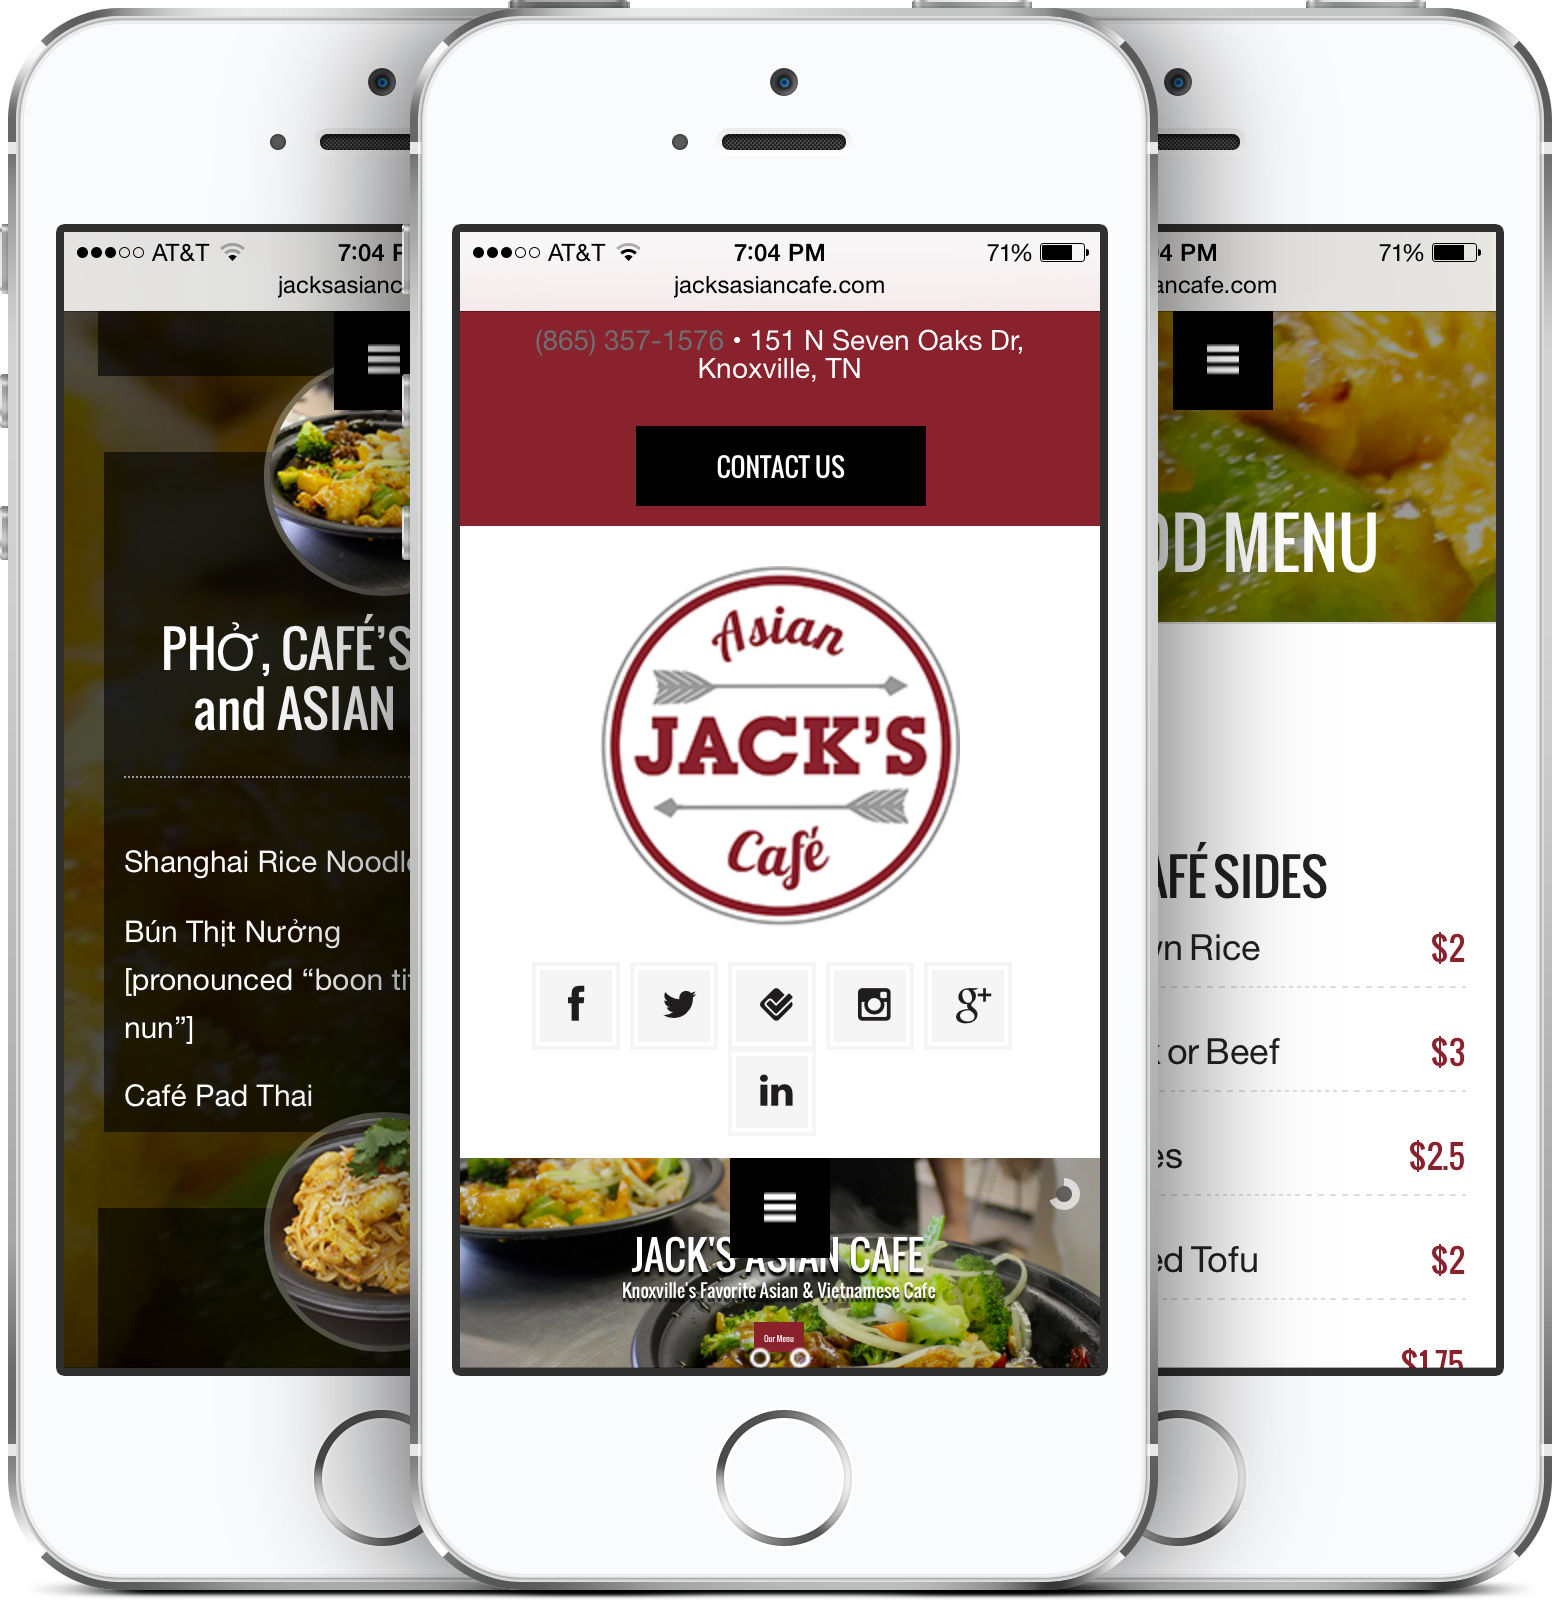 Jack's Asian Cafe on an iPhone